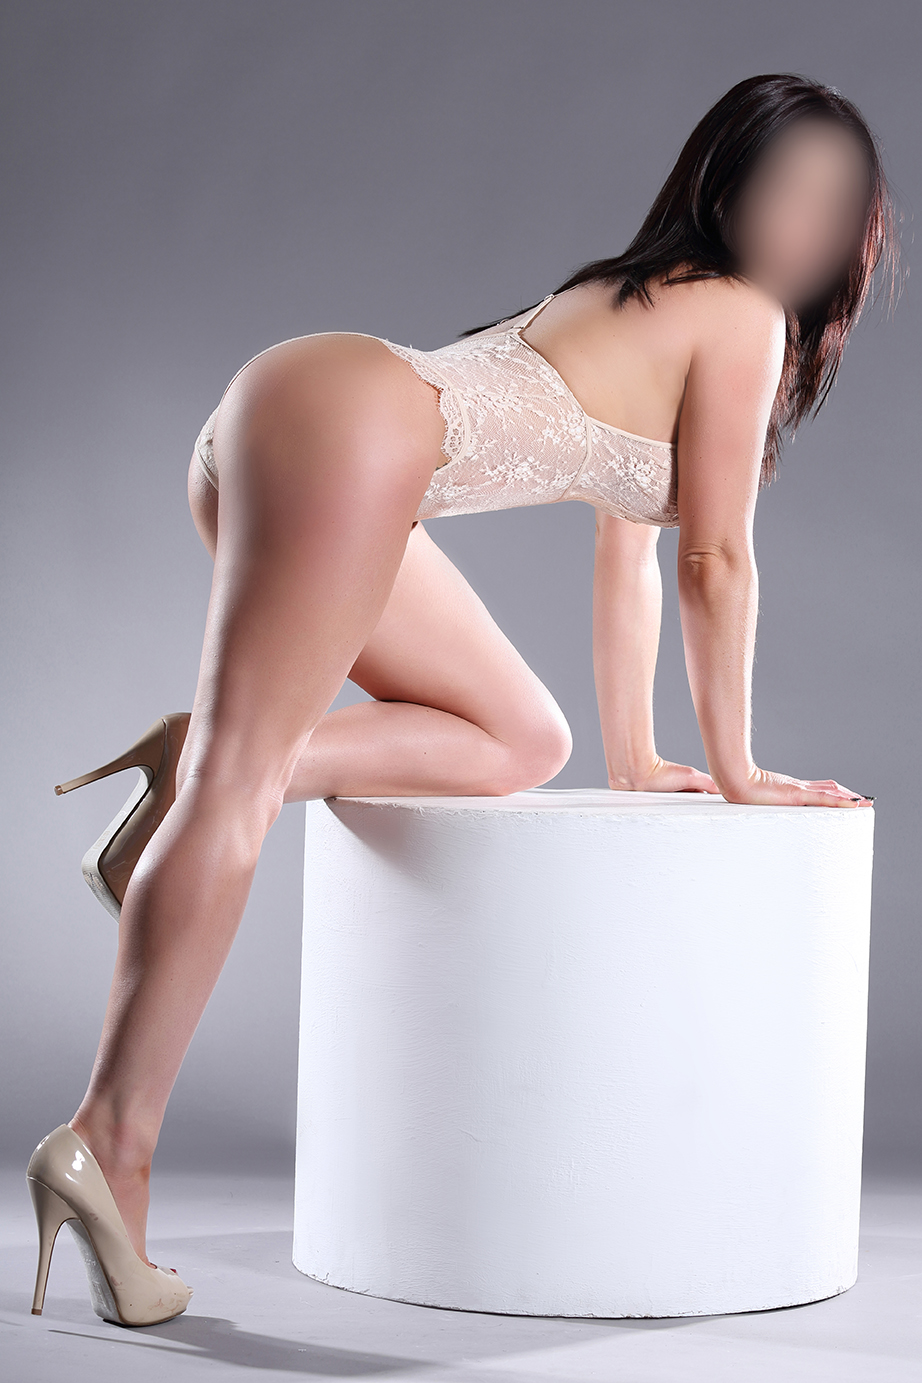 Brand New - Complete Natural Beauty brand new to escorting, Carmen x